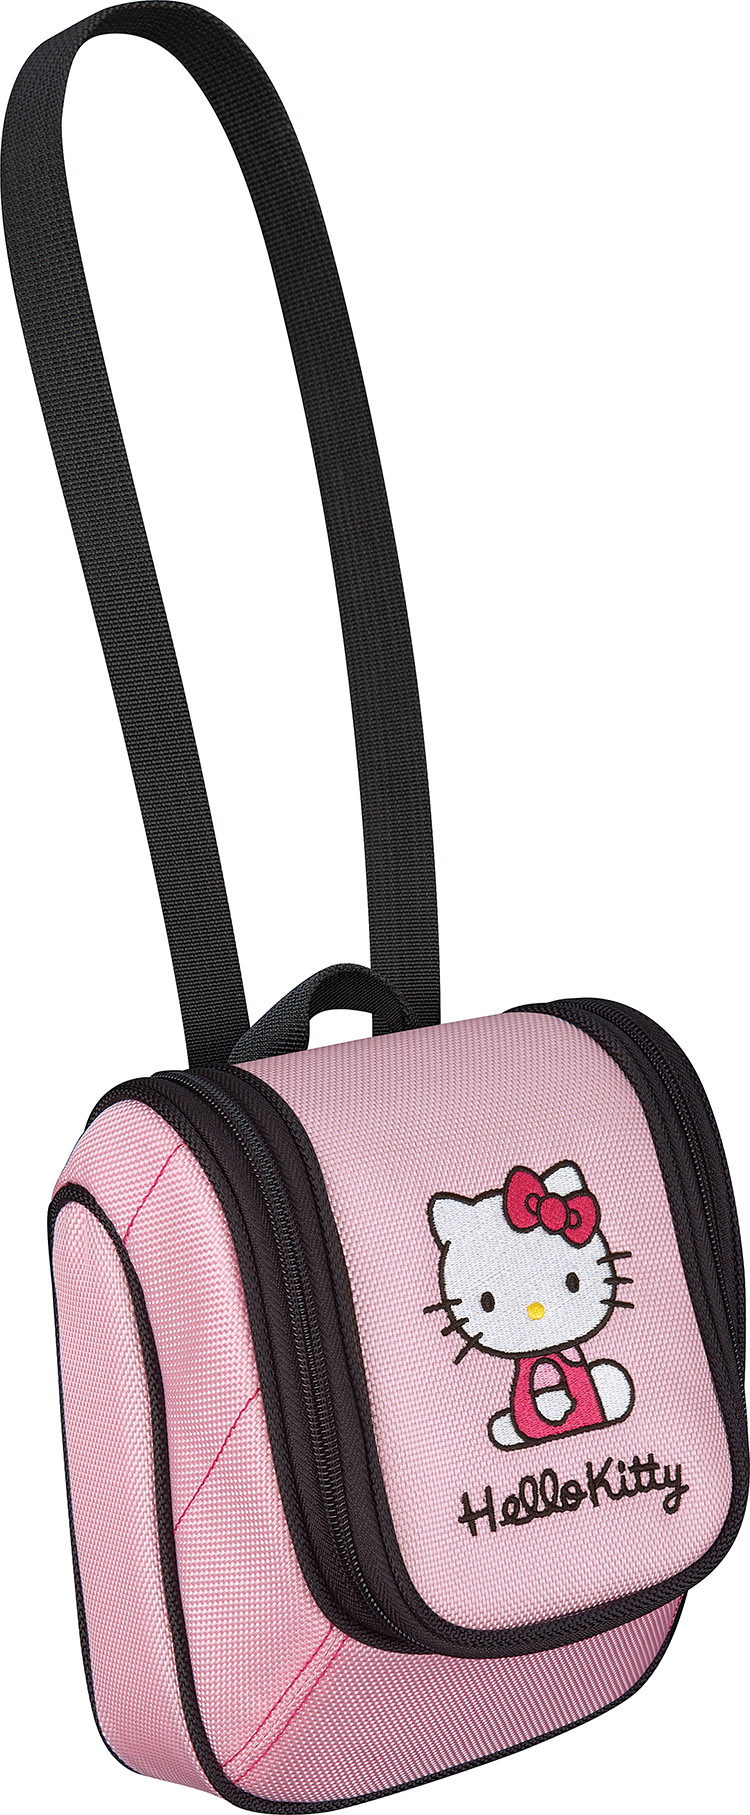 Official Hello Kitty® carrying bag - Image   #5